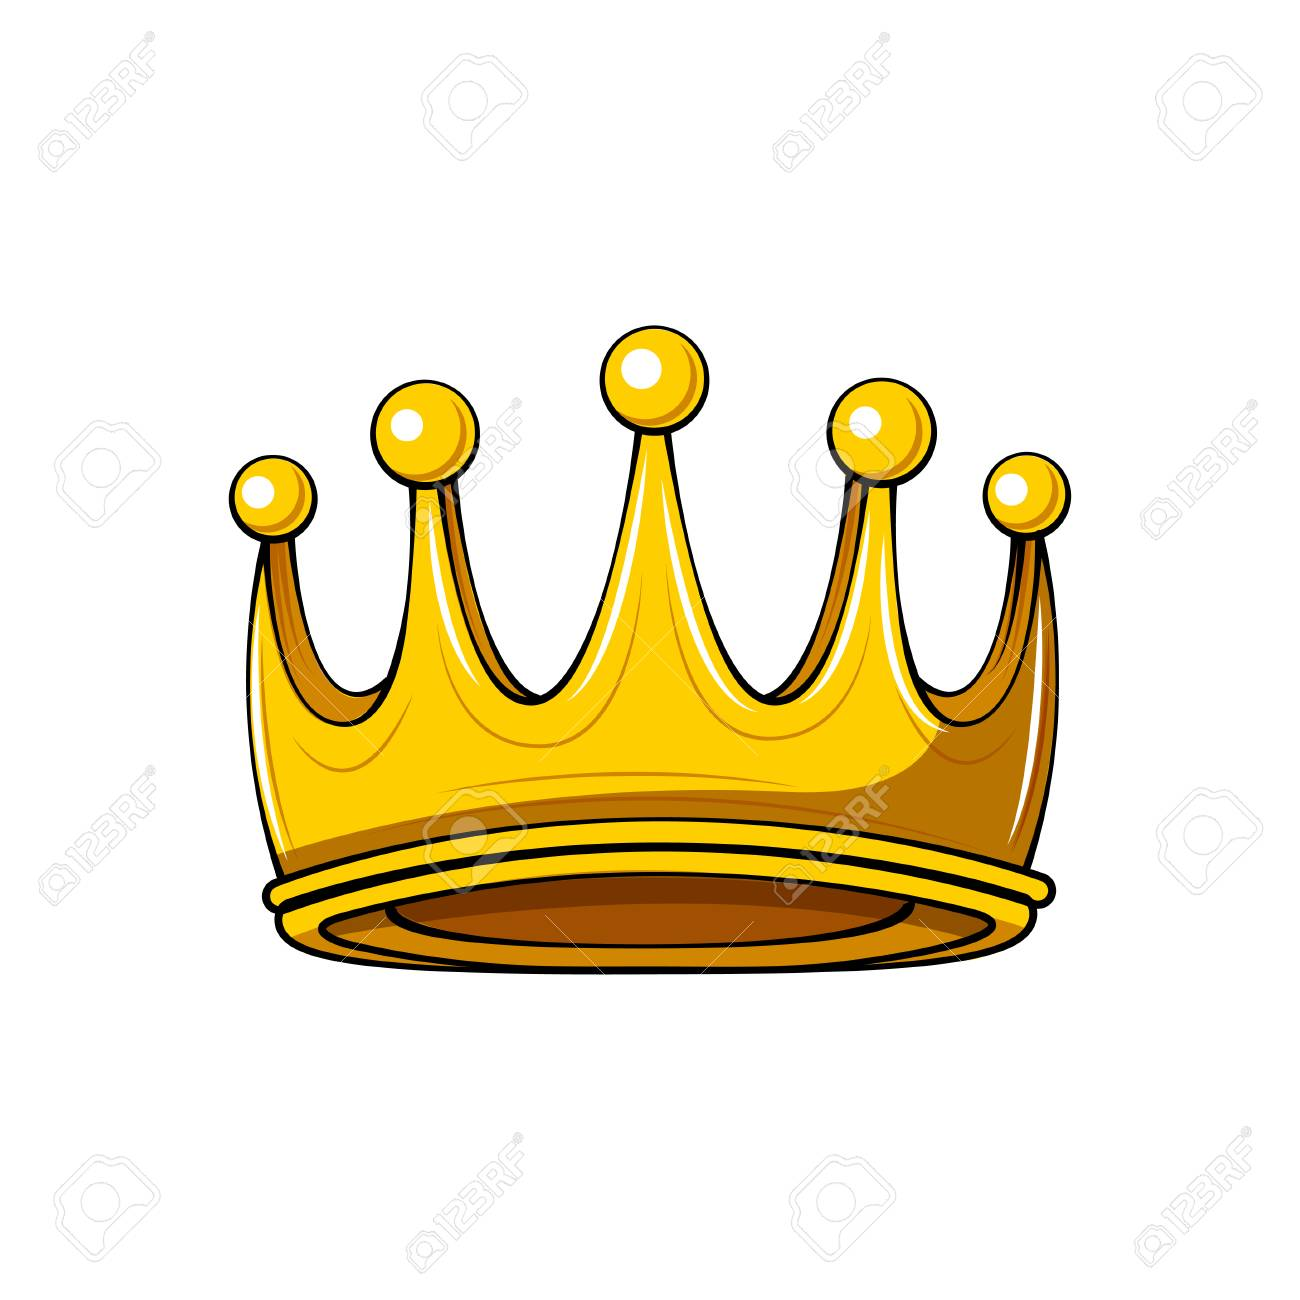 Golden Cartoon Crown Royal Badge King Symbol Queen Sign Design Royalty Free Cliparts Vectors And Stock Illustration Image 103665059 Crown cartoon vector clipart and illustrations (31,136). golden cartoon crown royal badge king symbol queen sign design